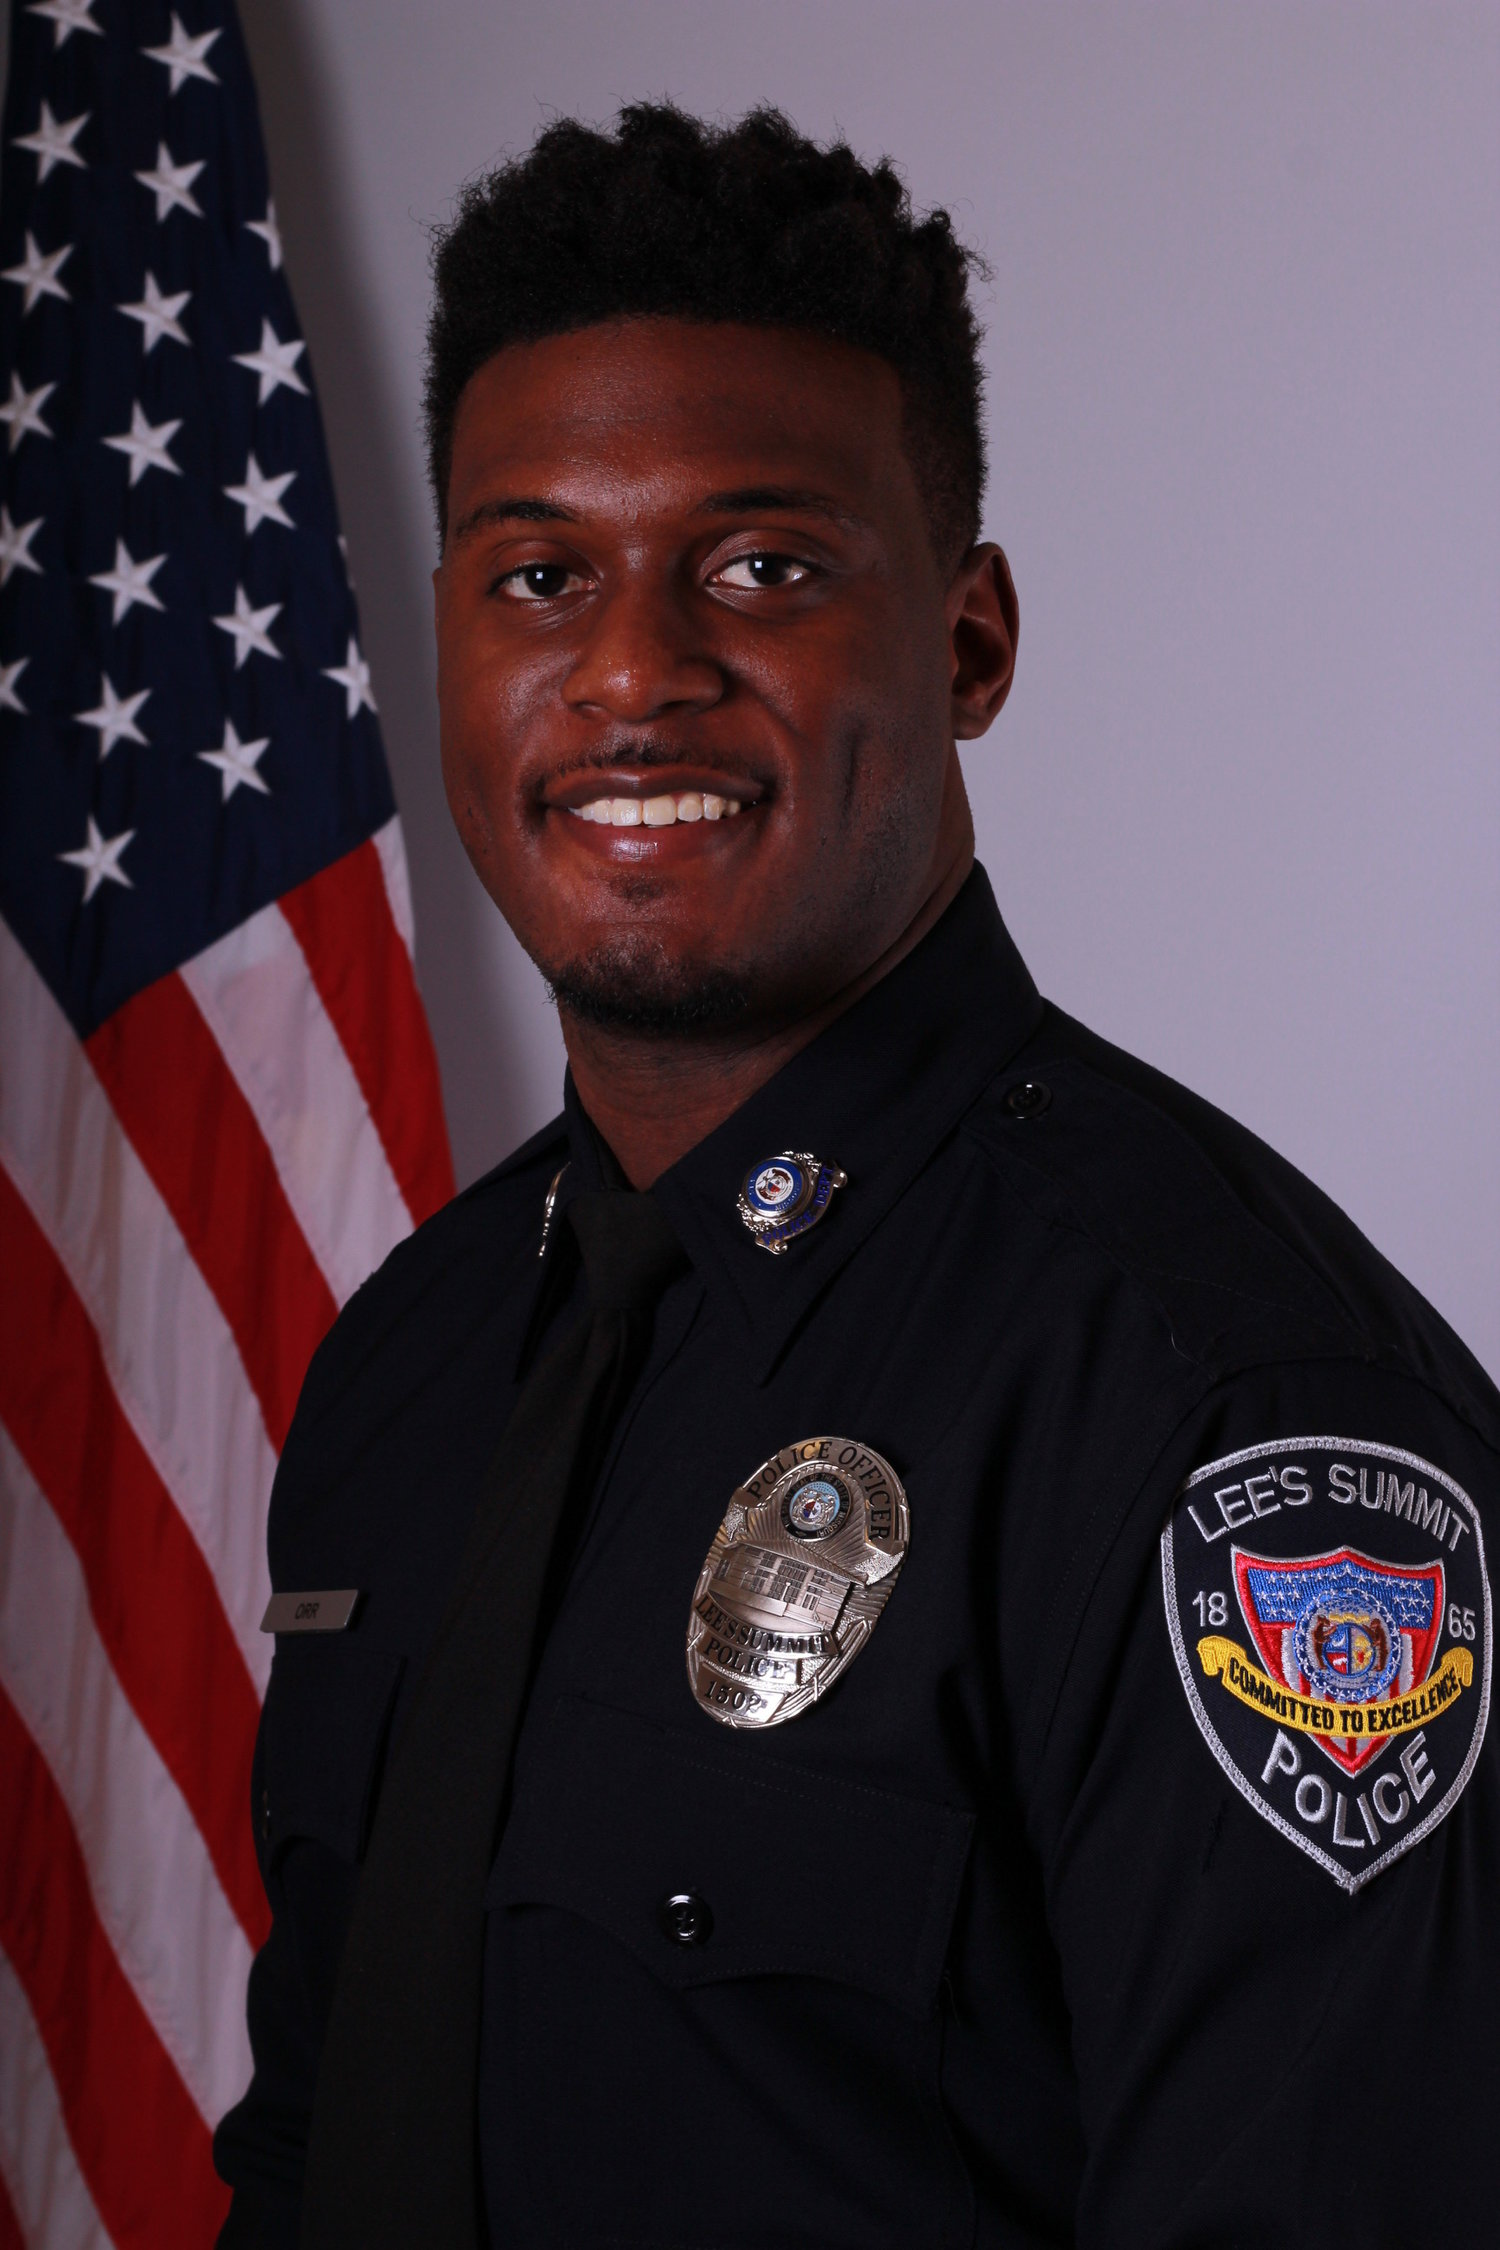 LSPD officer shot and killed in overnight incident in Kansas